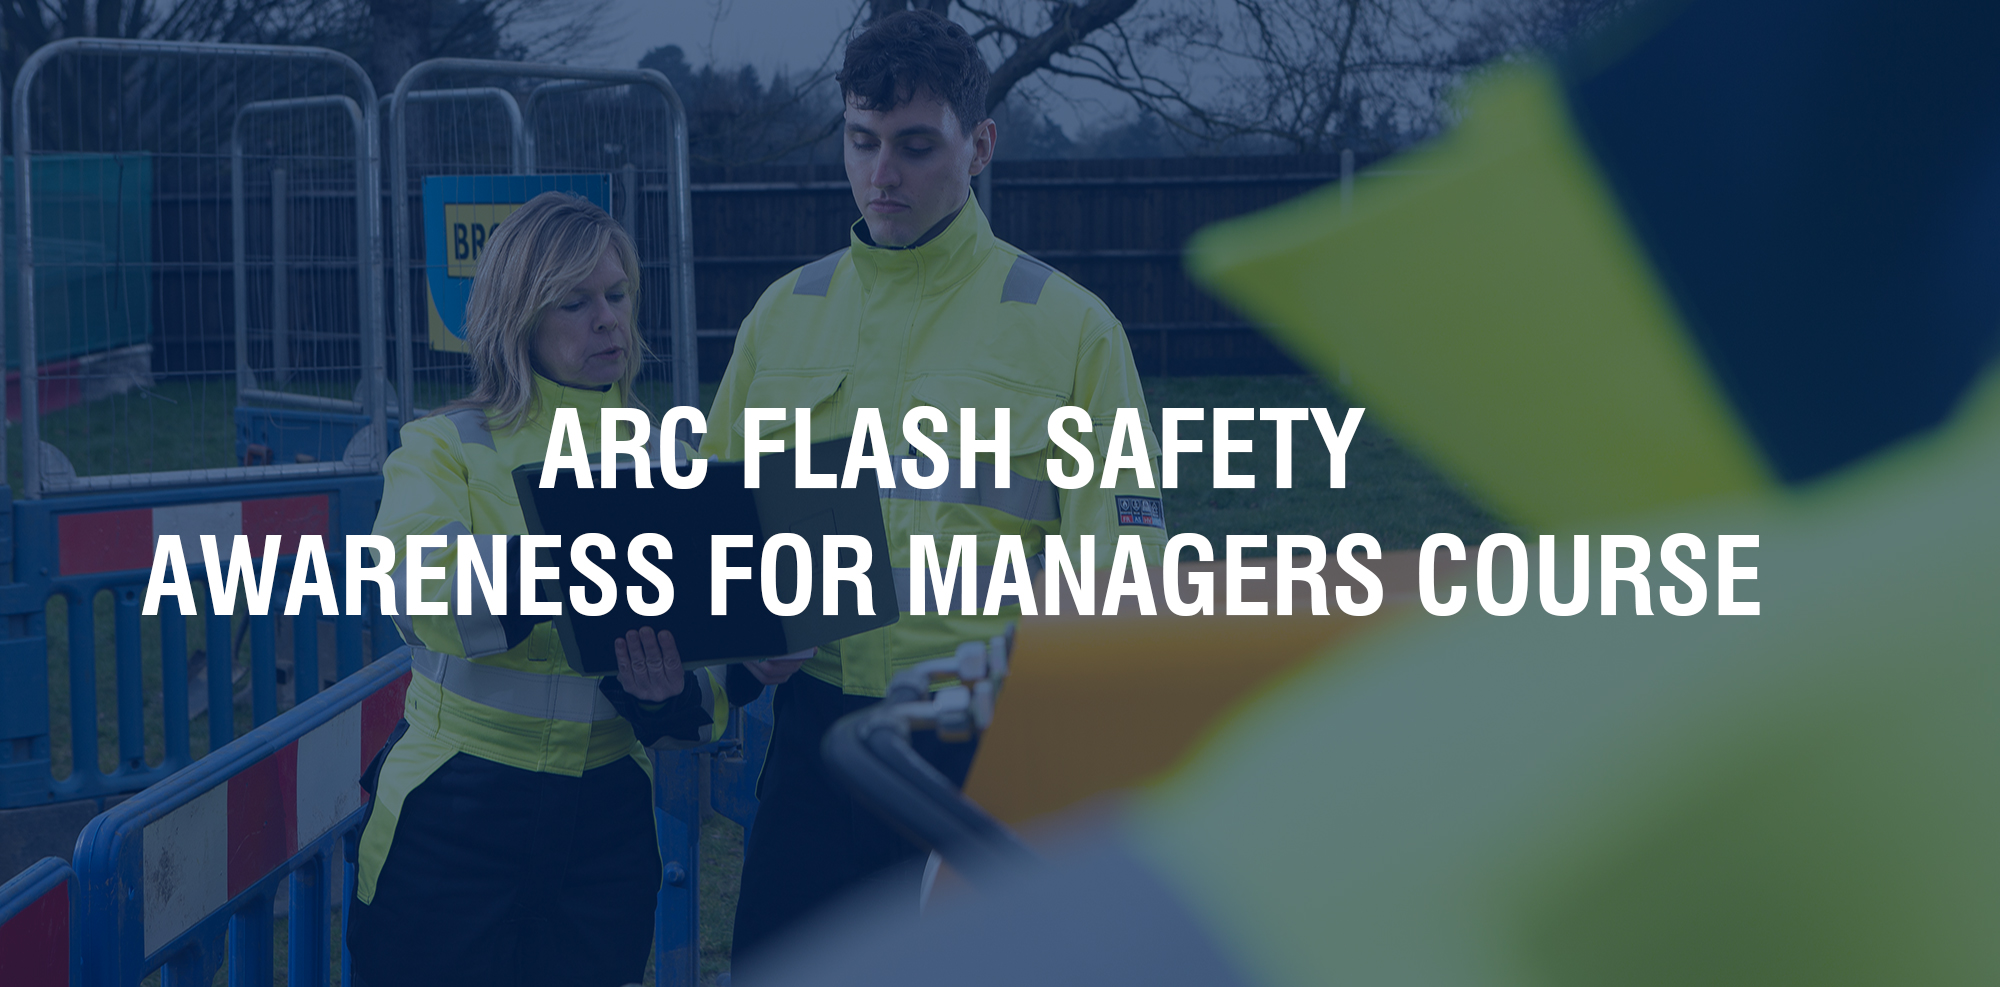 Arc Flash Safety Awareness for Managers